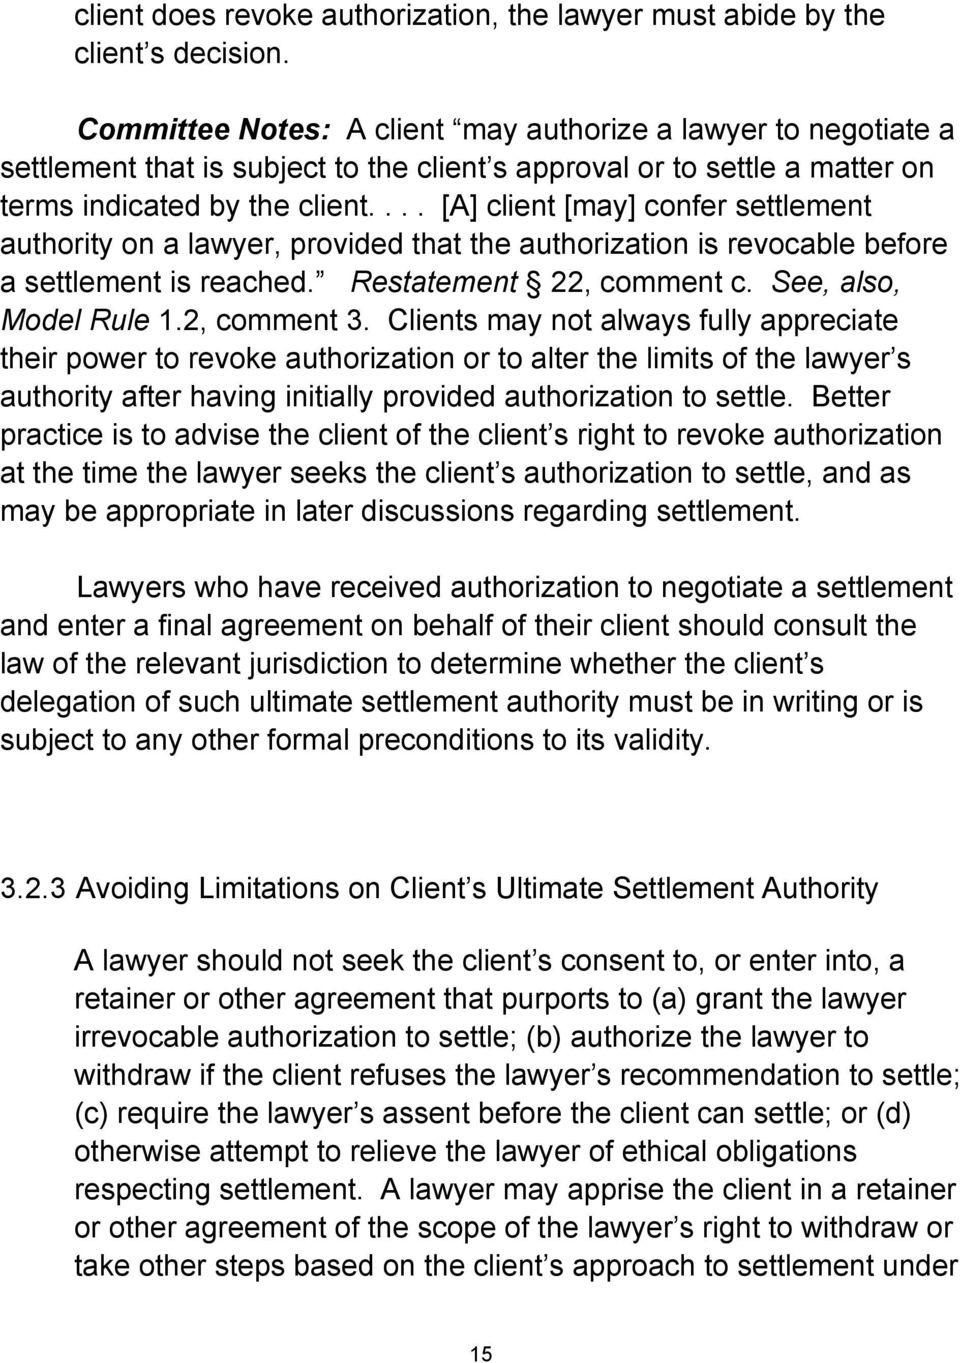 ... [A] client [may] confer settlement authority on a lawyer, provided that the authorization is revocable before a settlement is reached. Restatement 22, comment c. See, also, Model Rule 1.